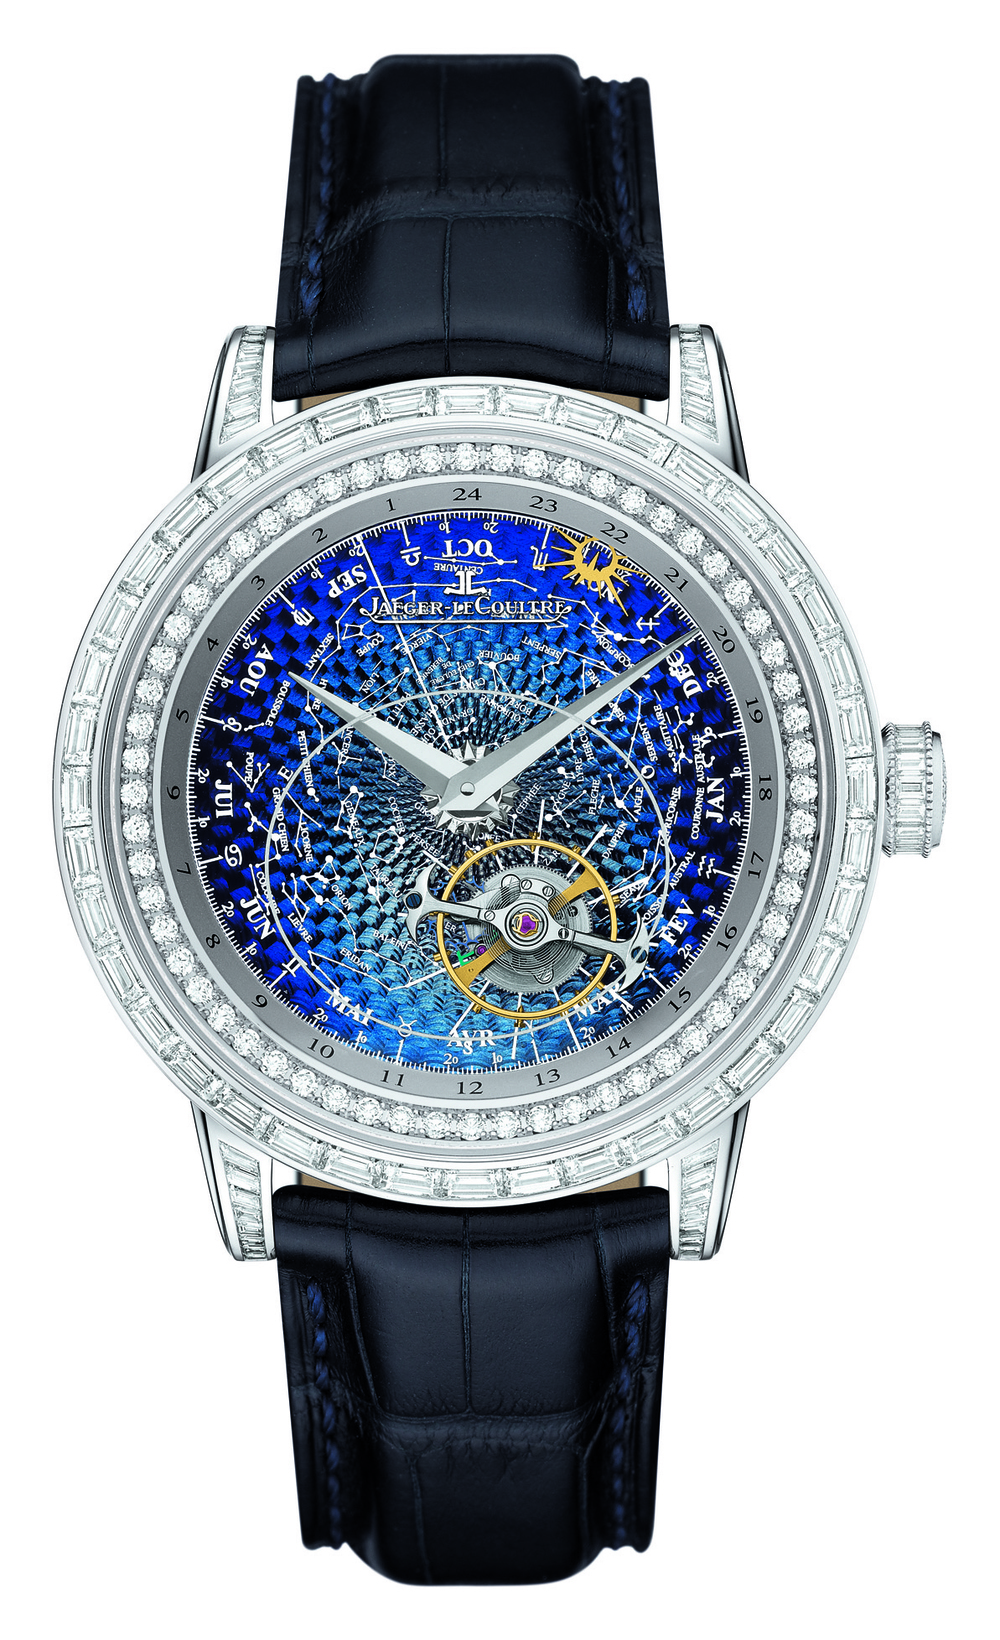 Jaeger Lecoultre Master Grande Tradition Tourbillon Céleste Watch Own a piece of the night sky. Every 24 hours, the sun completes one revolution around the diamond rim, passing by the signs of the zodiac. Price Upon Request At Jaeger-lecoultre.com